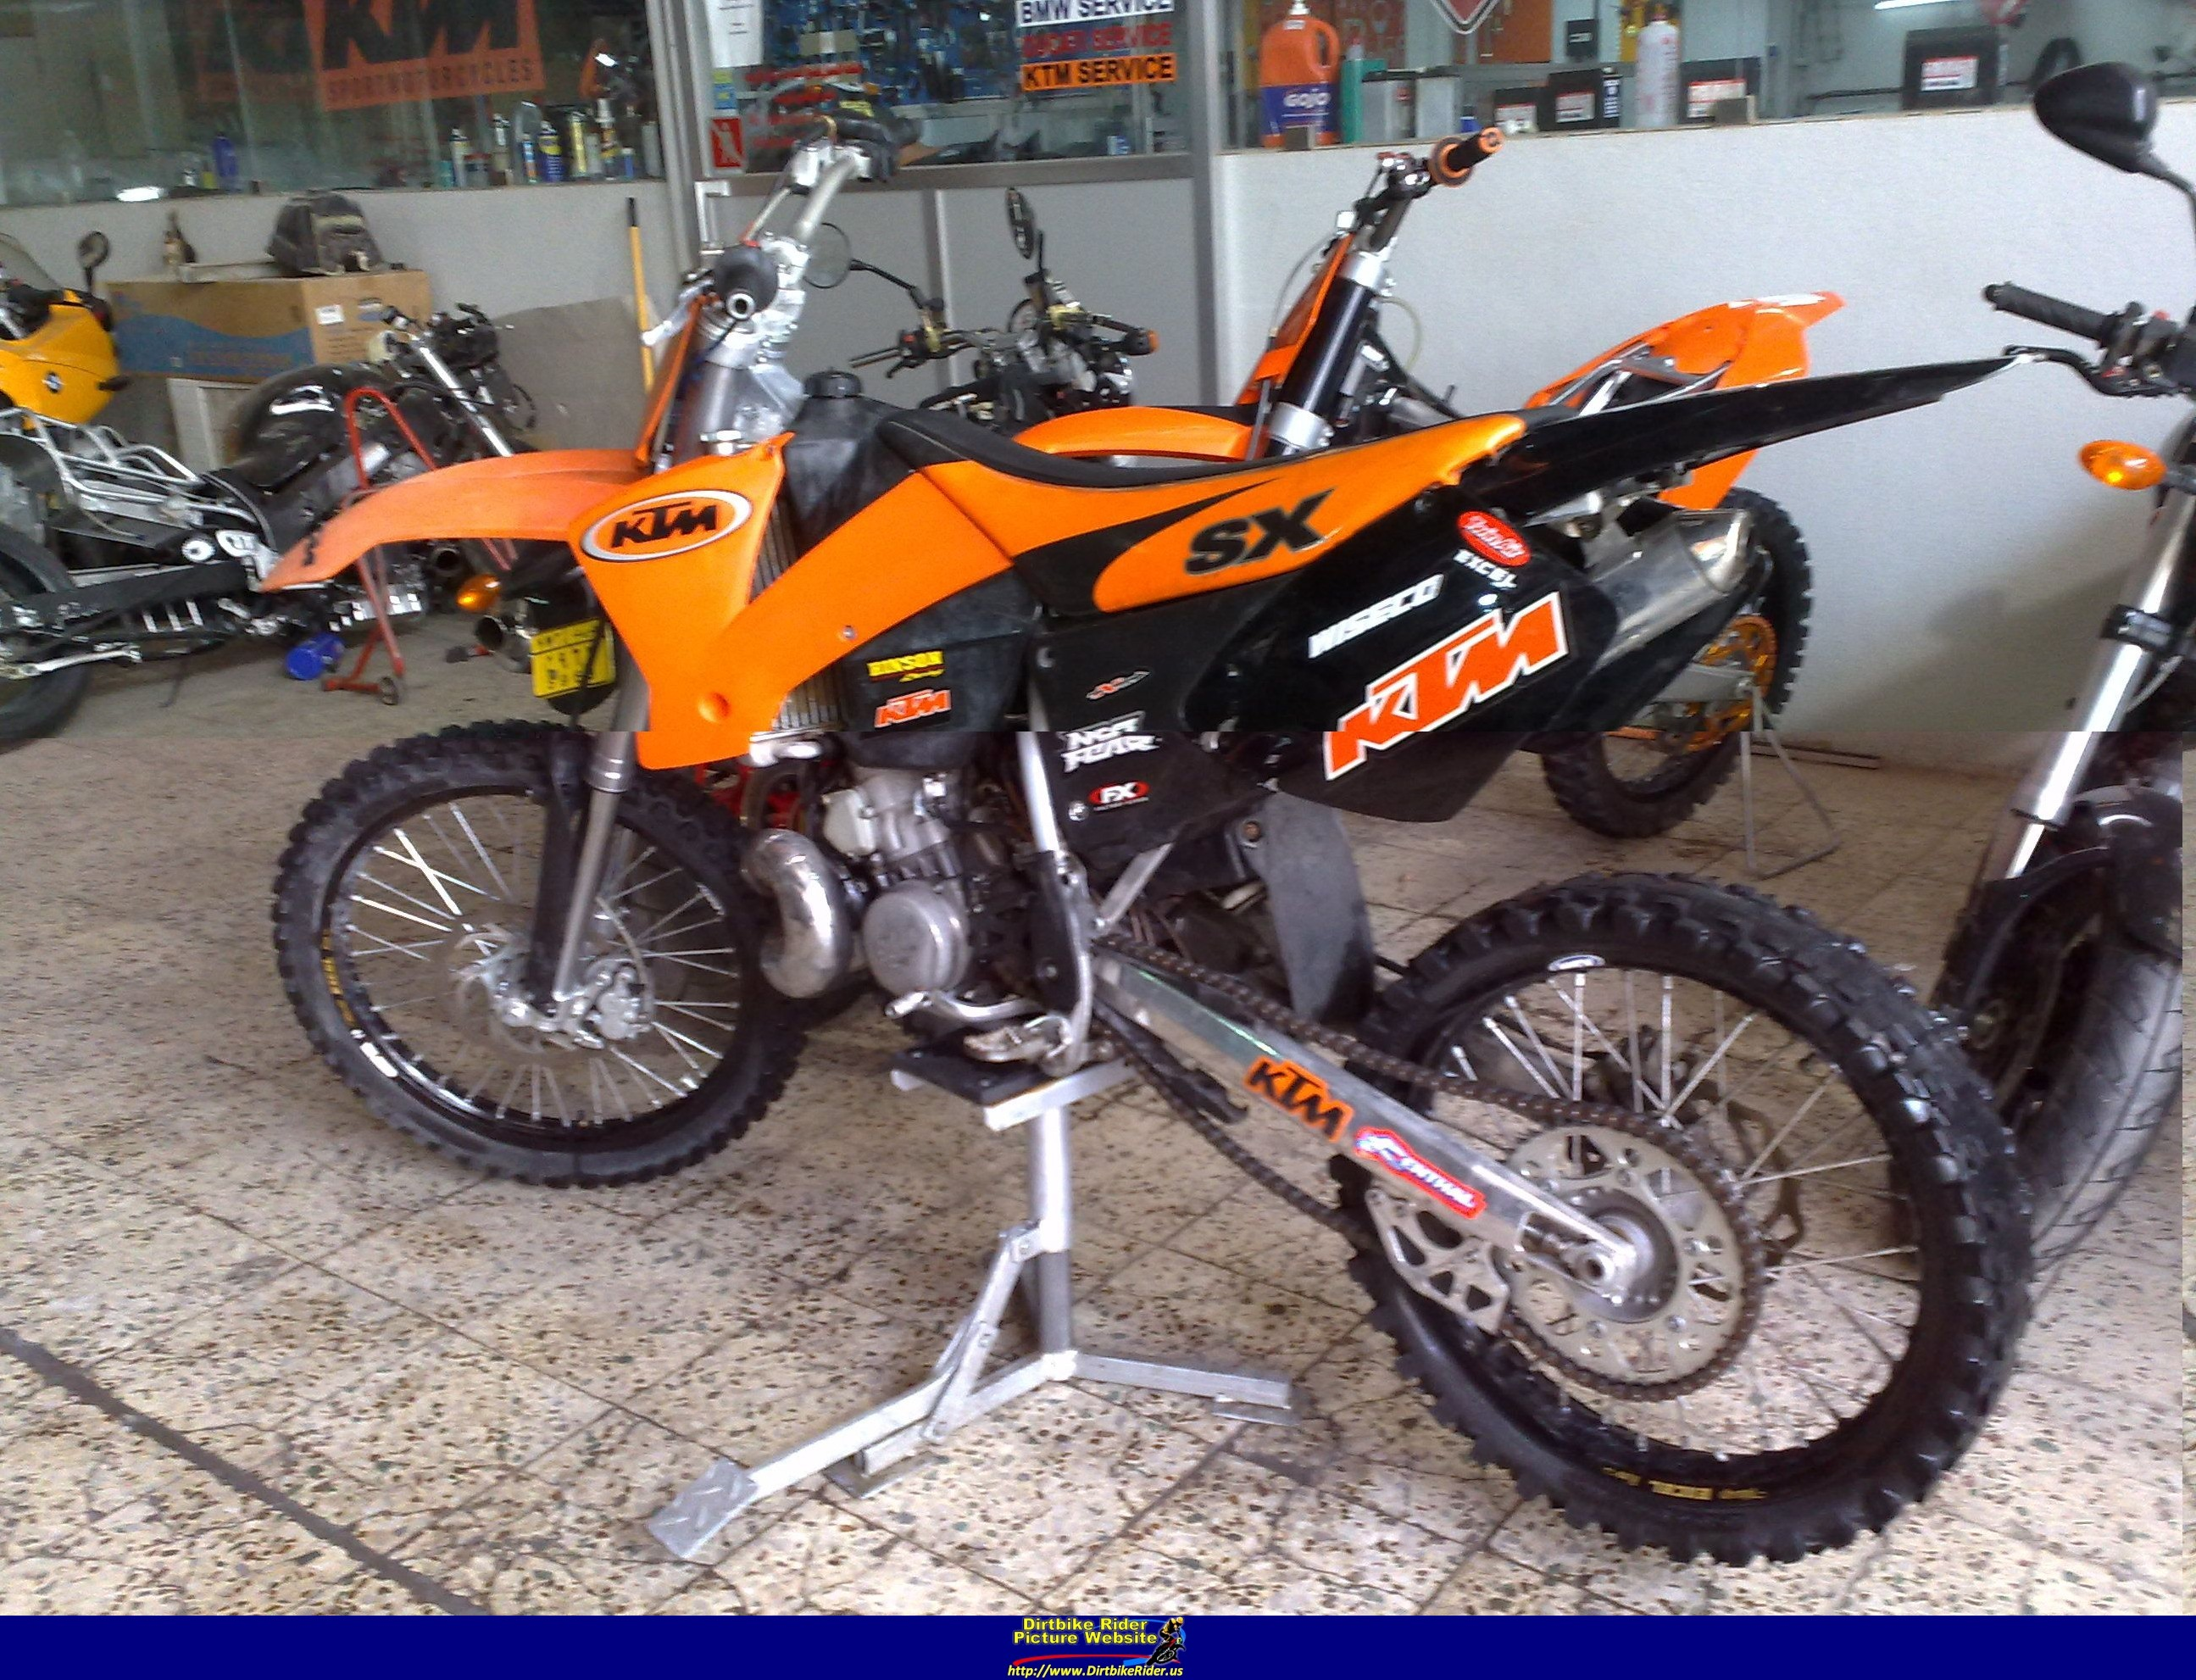 2002 Ktm 380 Sx Pics Specs And Information